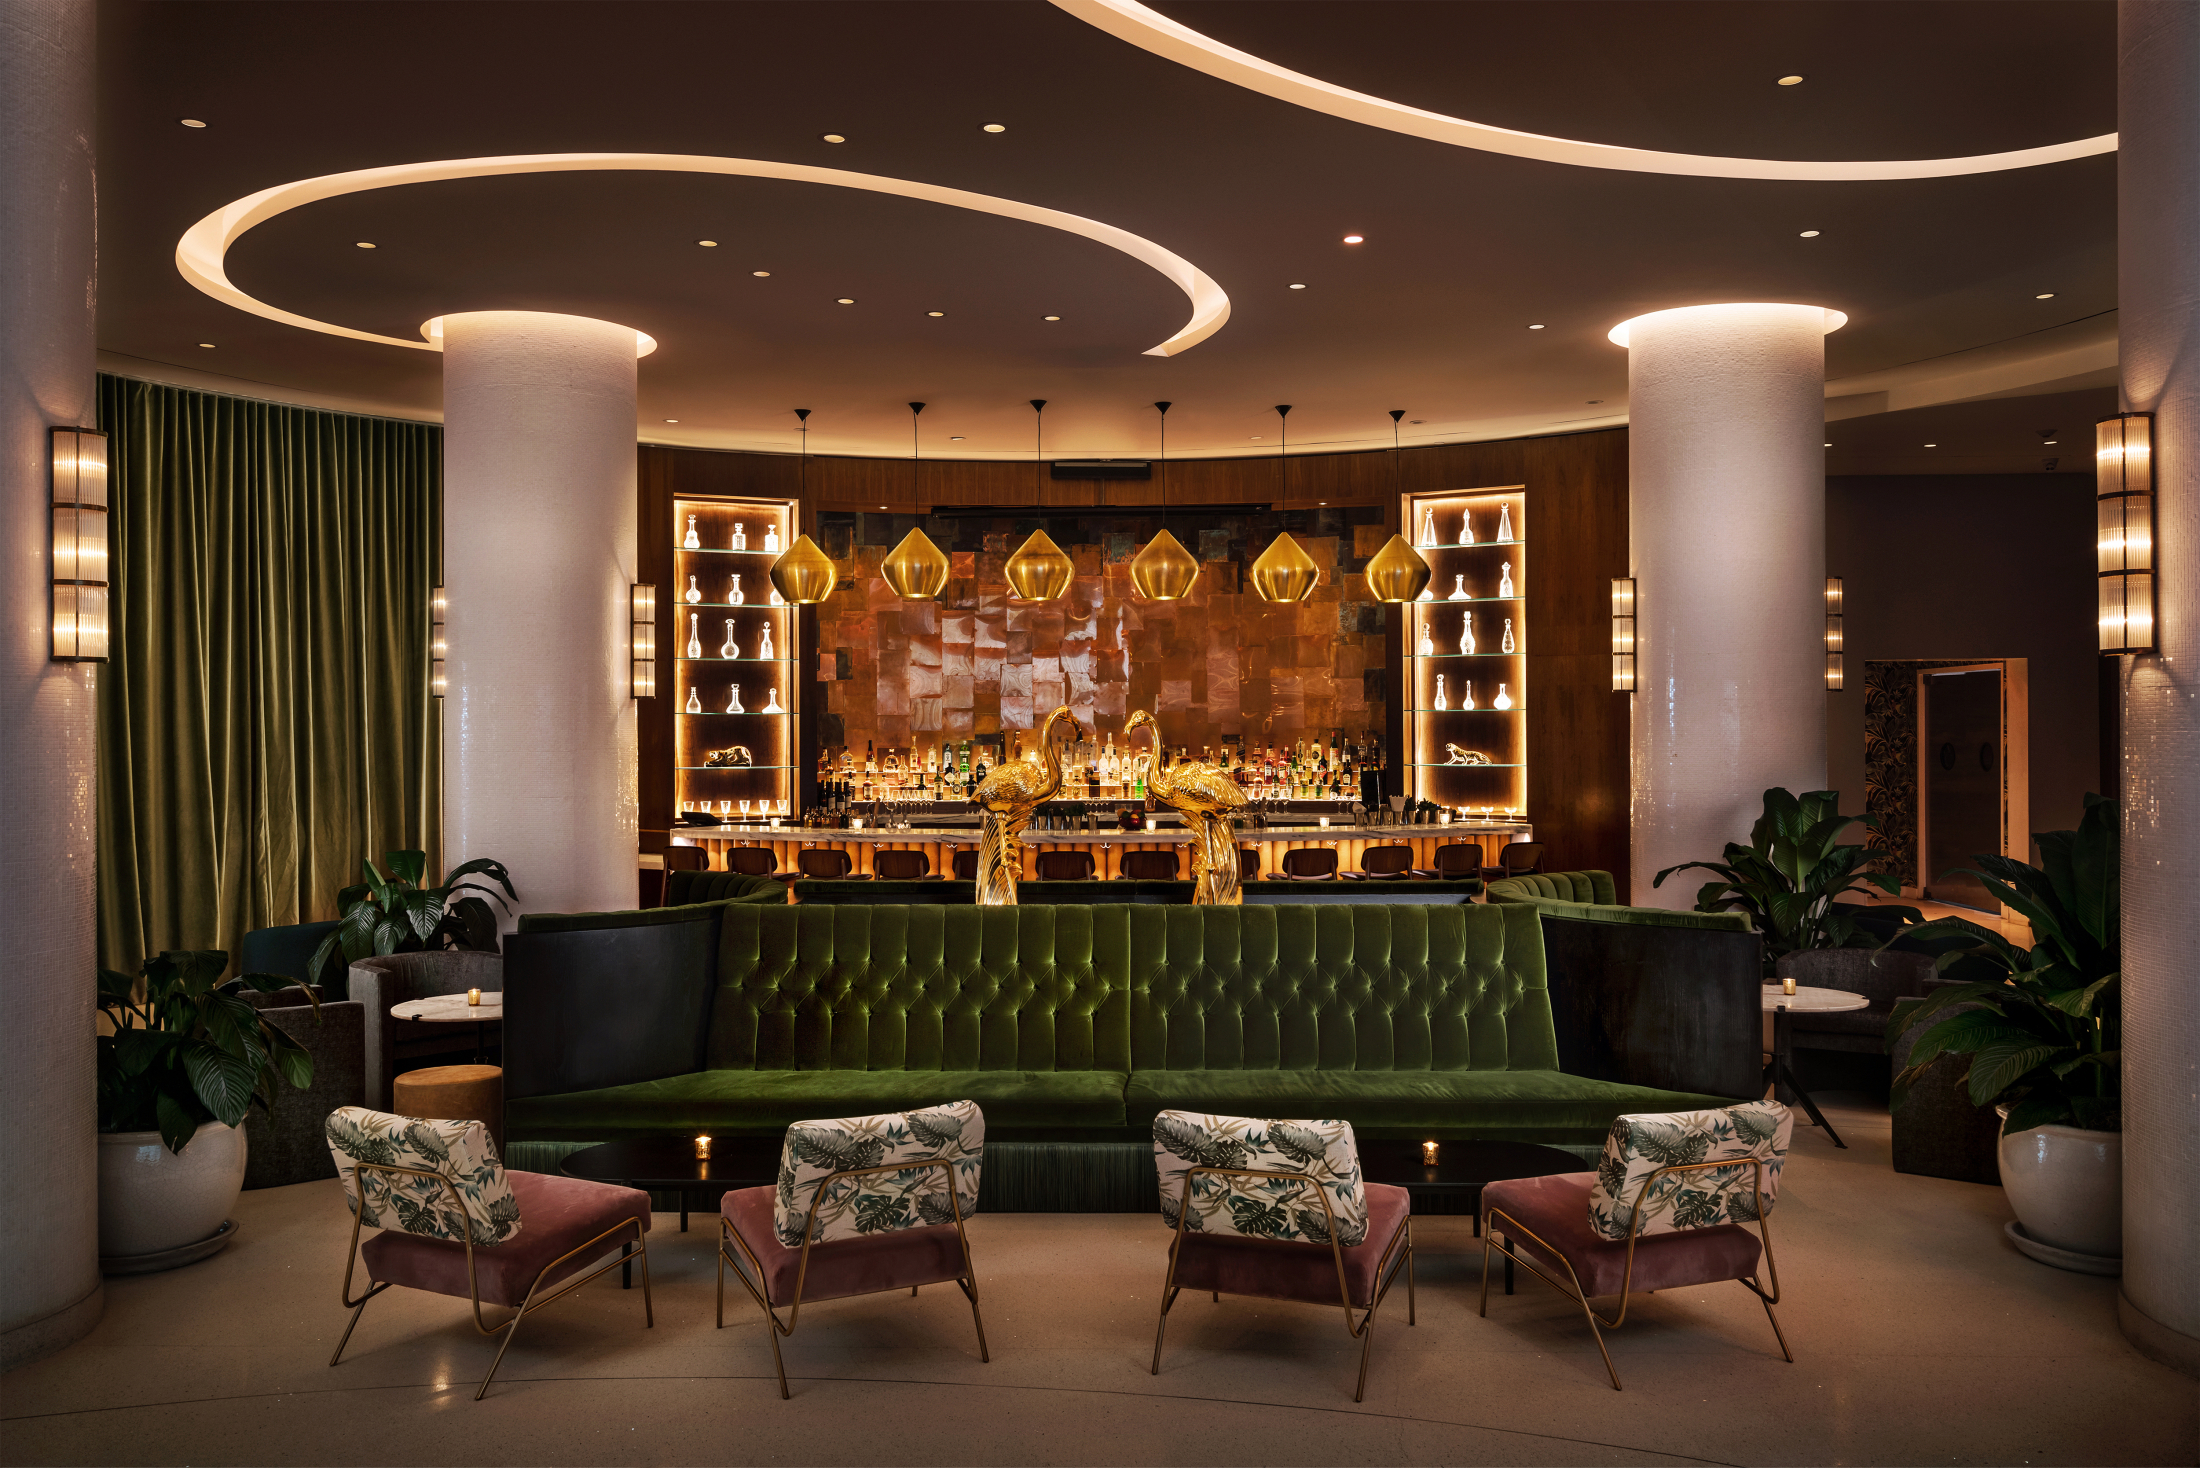 Dim semi circle bar and seating area with large pillars plush green velvet couch and green velvet curtains